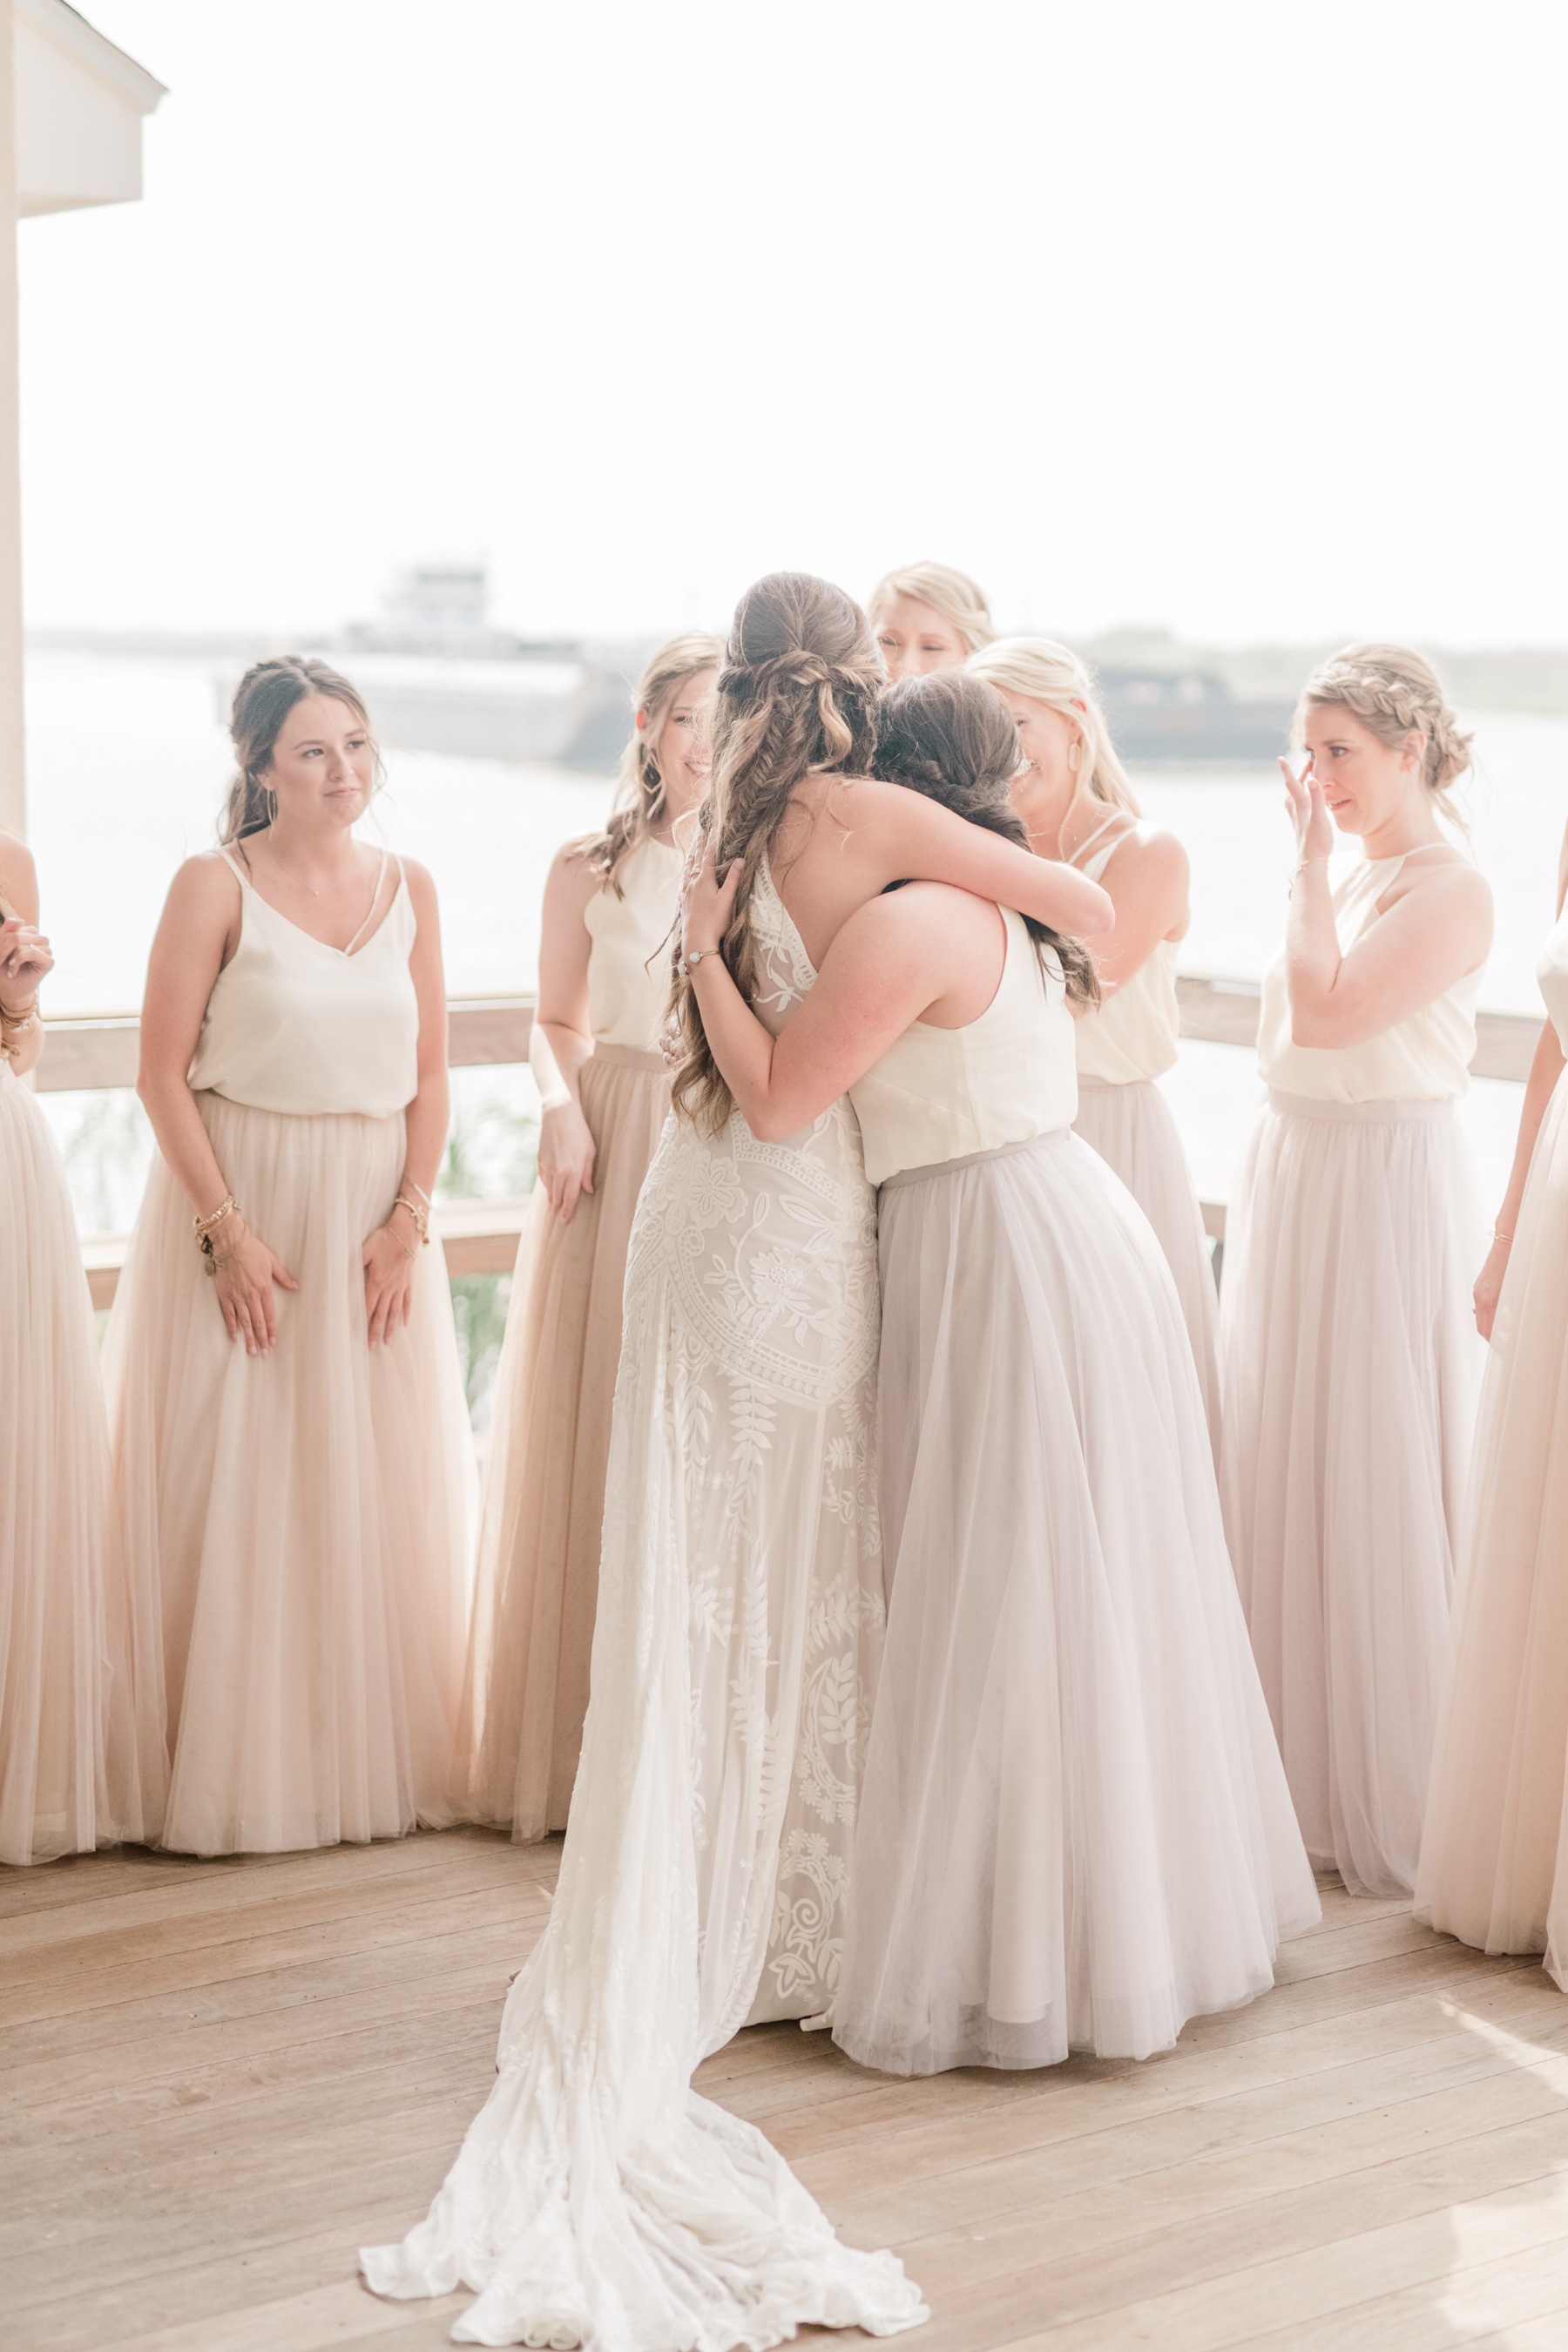 First look with bridesmaids wedding day beach galveston mismatched bridesmaid dress inspiration + destination planner coordinator epoch co + ten23 photography